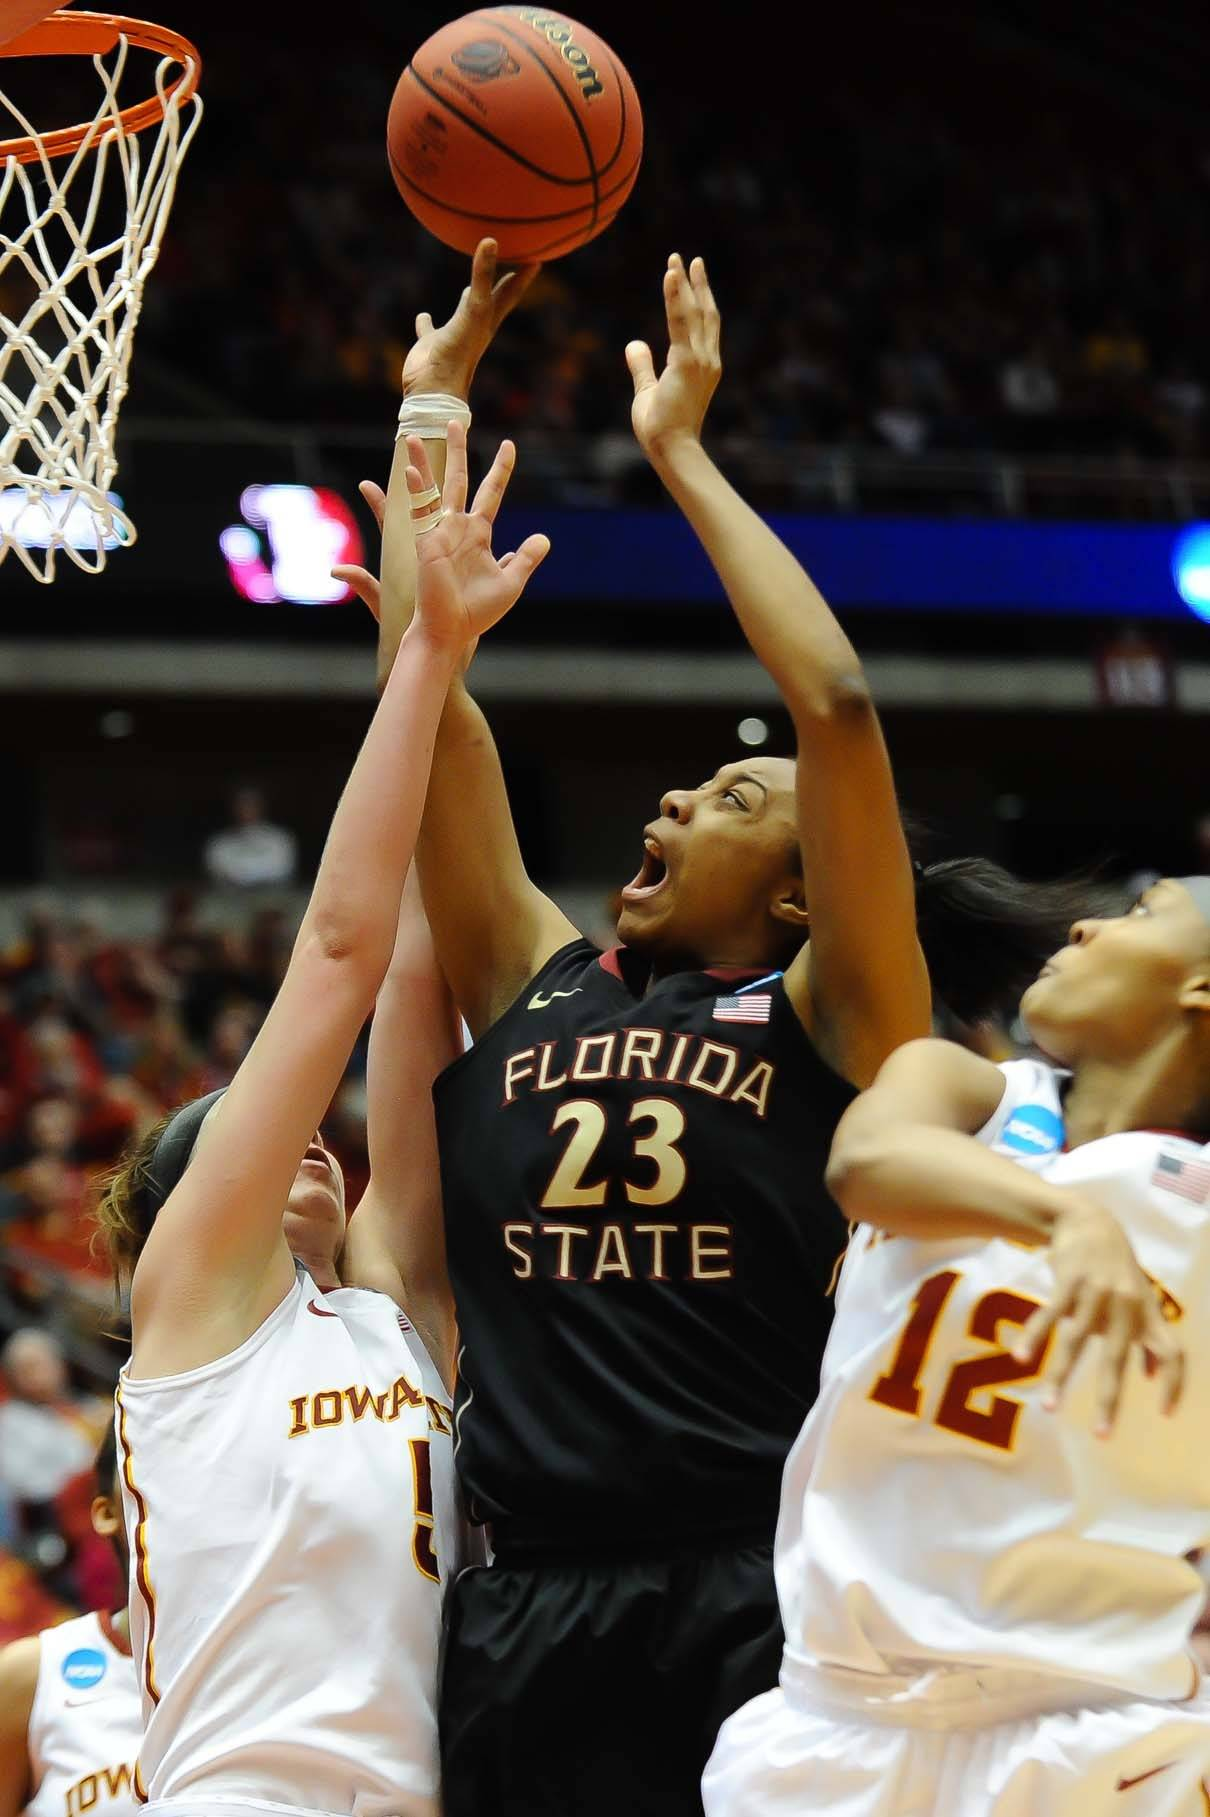 Mar 22, 2014; Ames, IA, USA; Florida State Seminoles forward Ivey Slaughter (23) attempts a shot against the Iowa State Cyclones. Mandatory Credit: Steven Branscombe-USA TODAY Sports